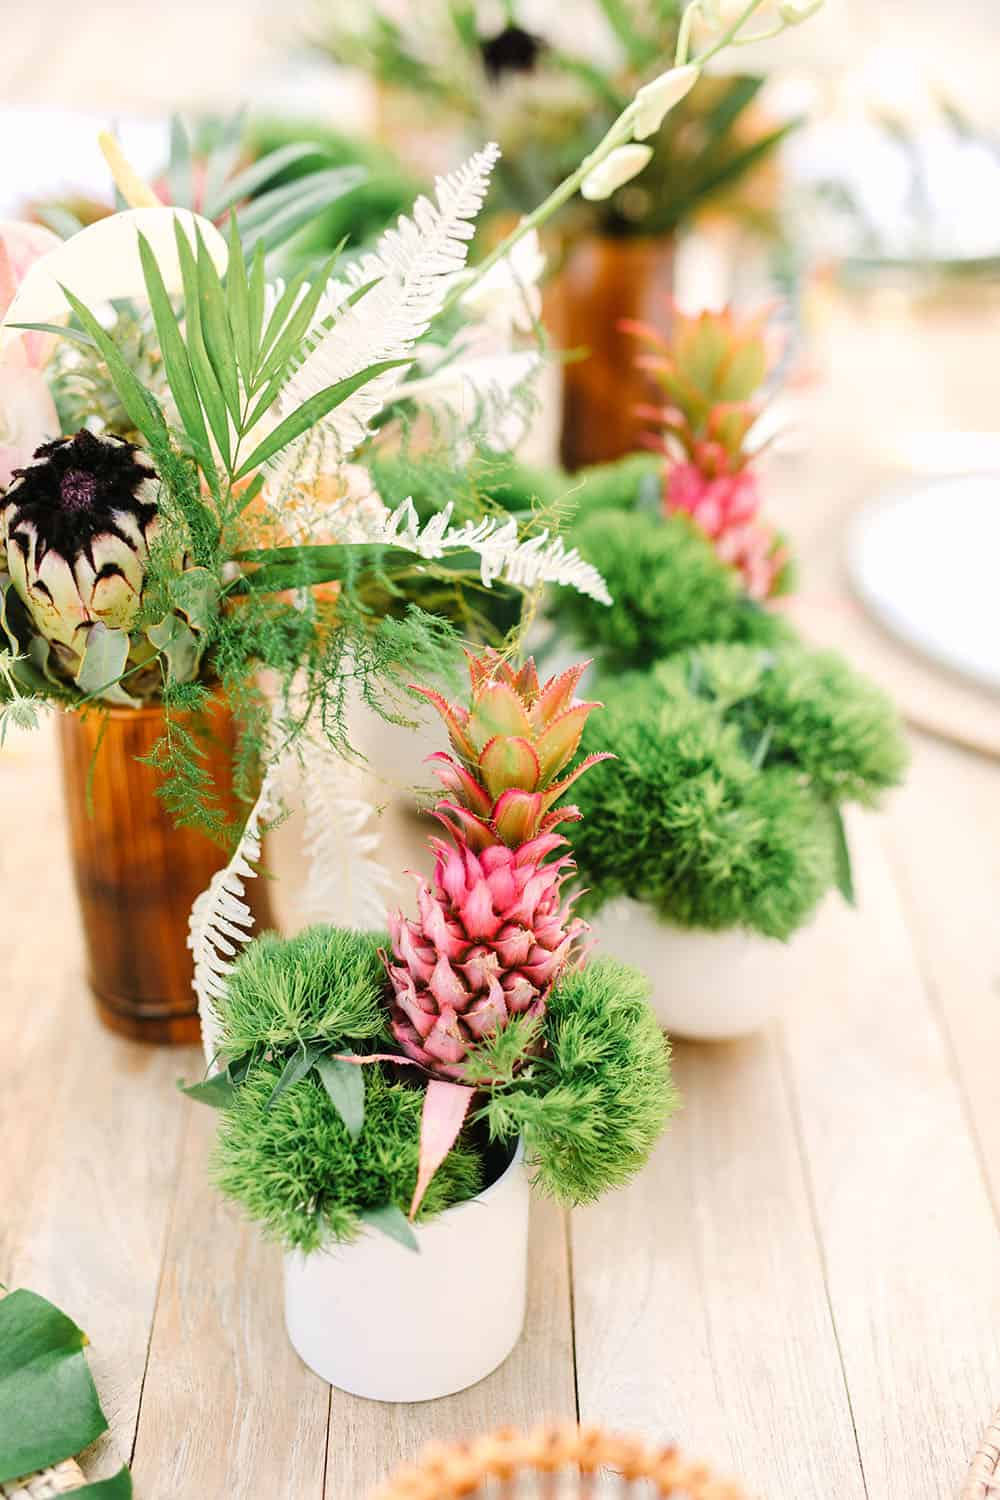 Tropical flowers and a pink pineapple for a backyard party.